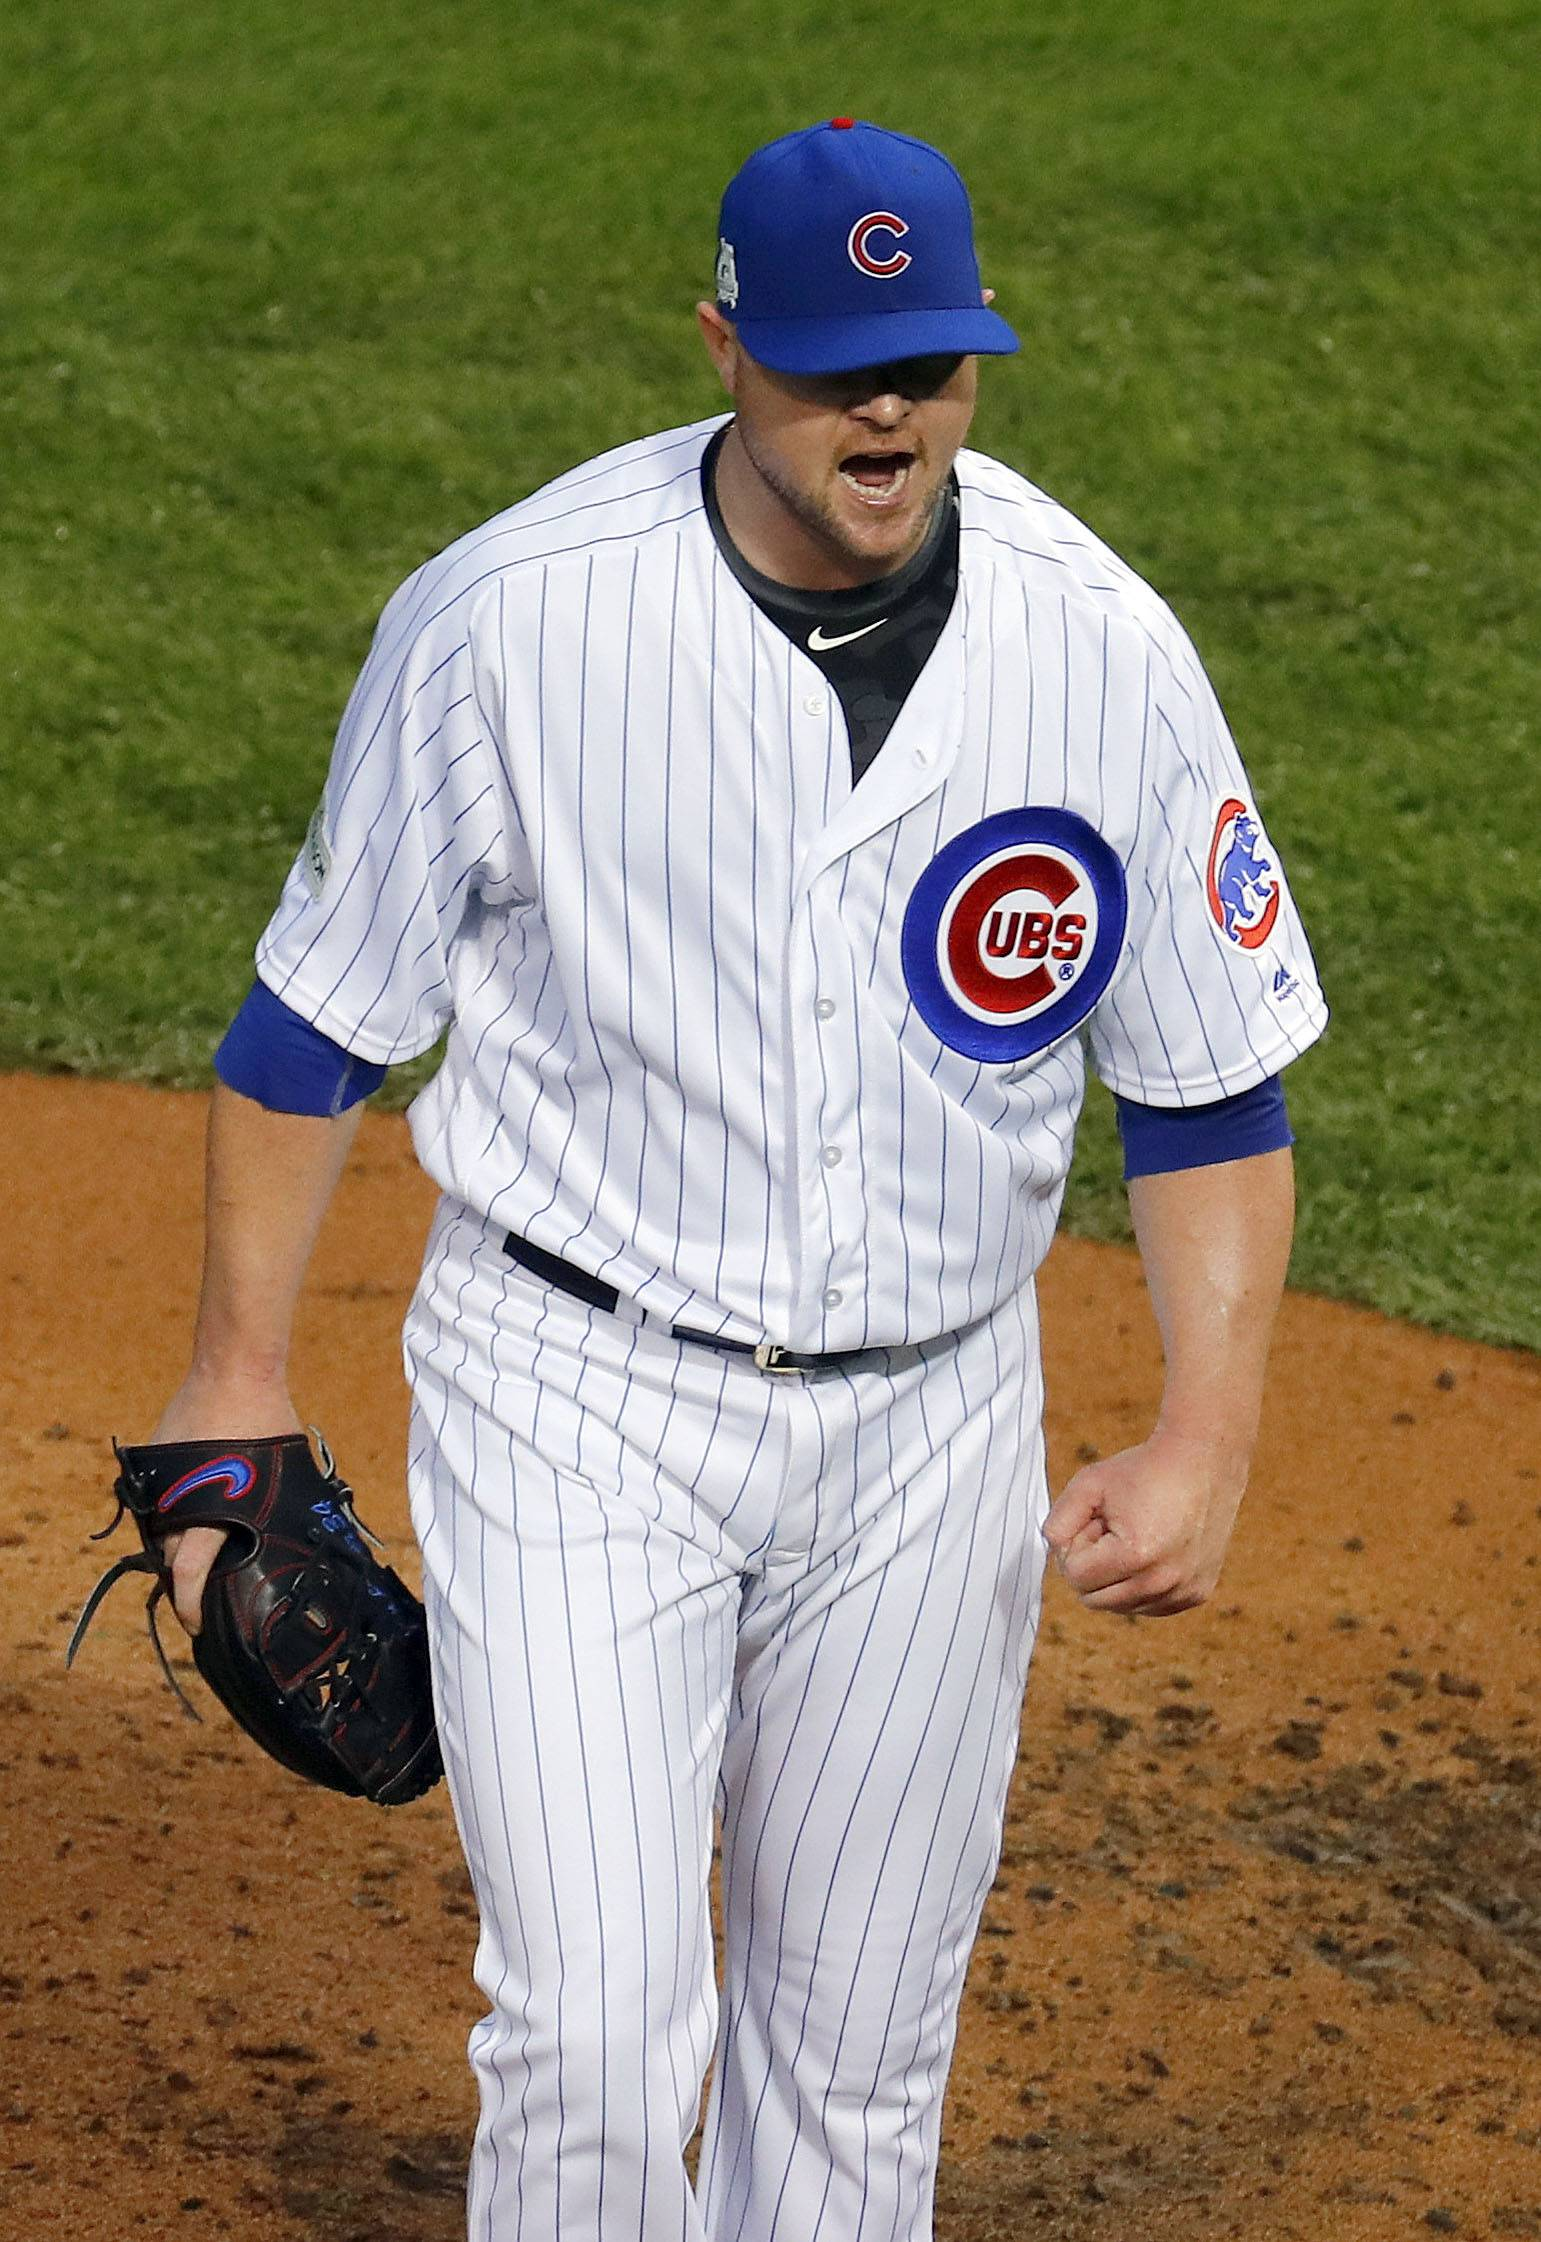 Steve Lundy/slundy@dailyherald.com Chicago Cubs pitcher Jon Lester cheers after getting out of the 5th inning during Game 4 of the National League division series at Wrigley Field in Chicago Wednesday, October 11, 2017.